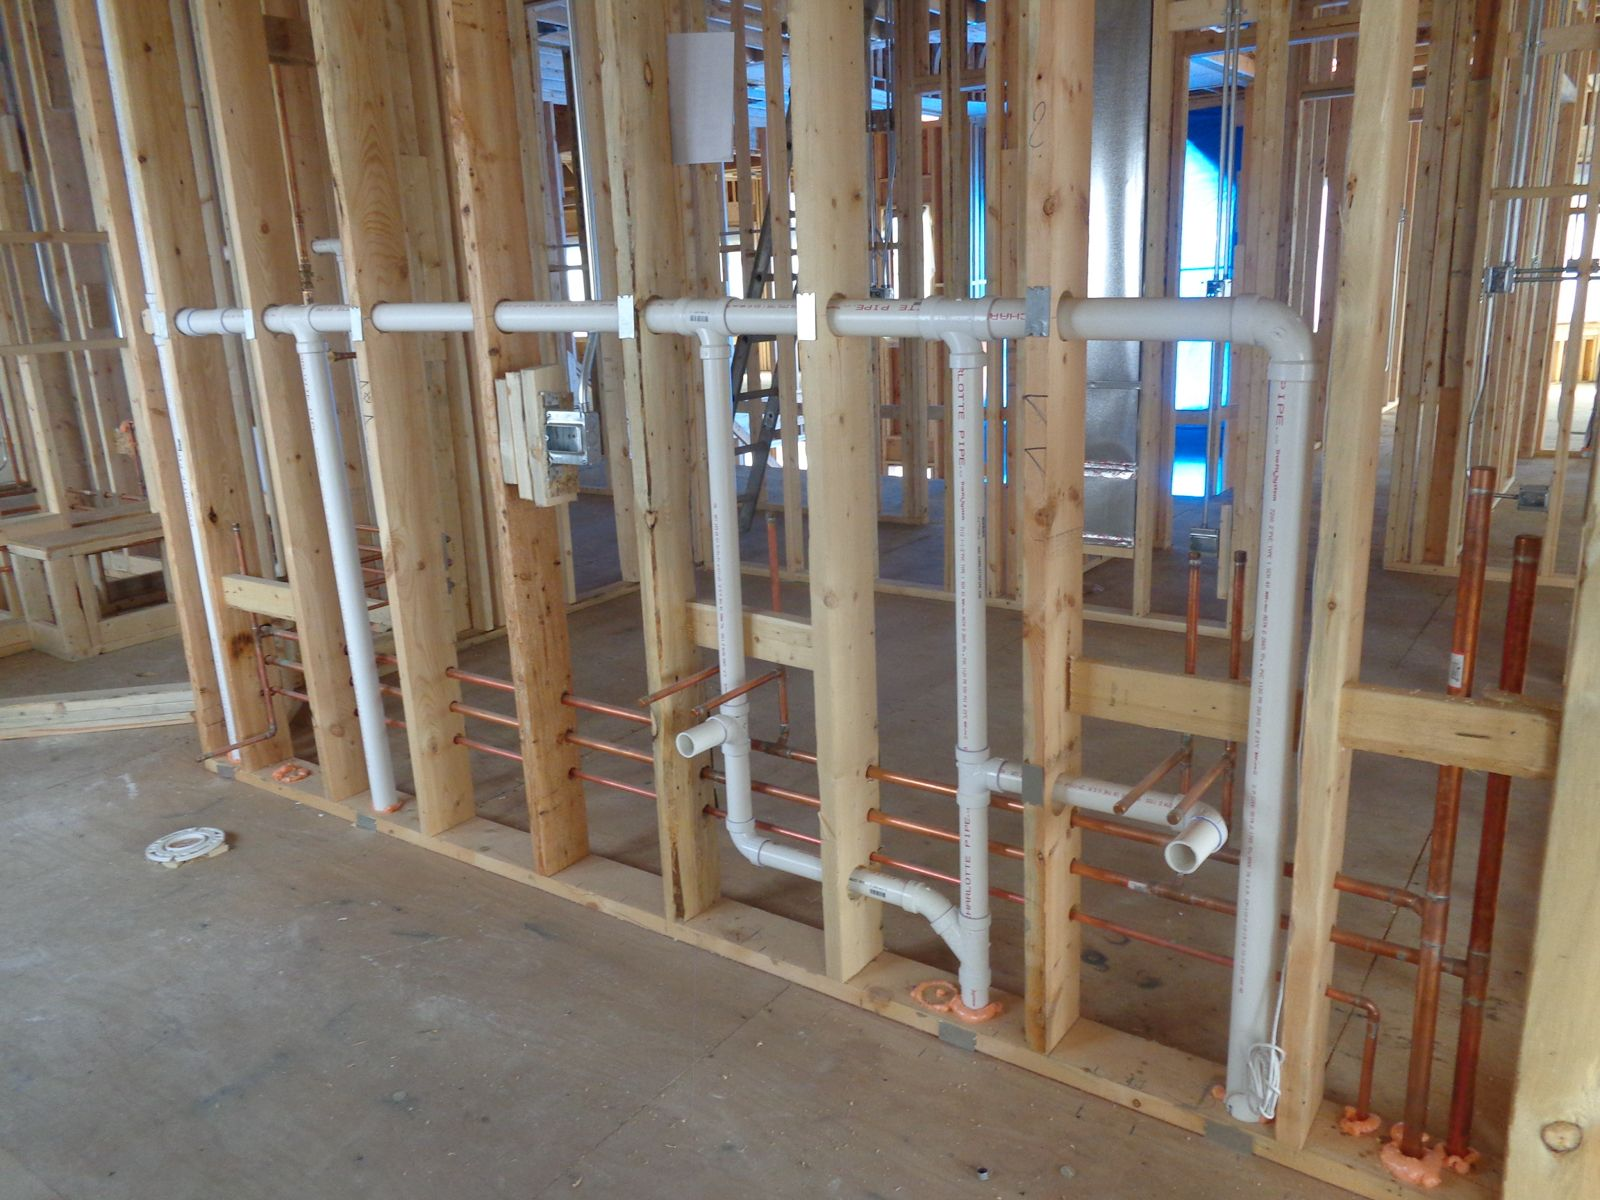 Systems Are Roughed In Your Plumbing Phone Tv Electrical Hvac And Other Systems Will Be Roughed In Meaning Plumbing Installation Plumbing Diy Plumbing